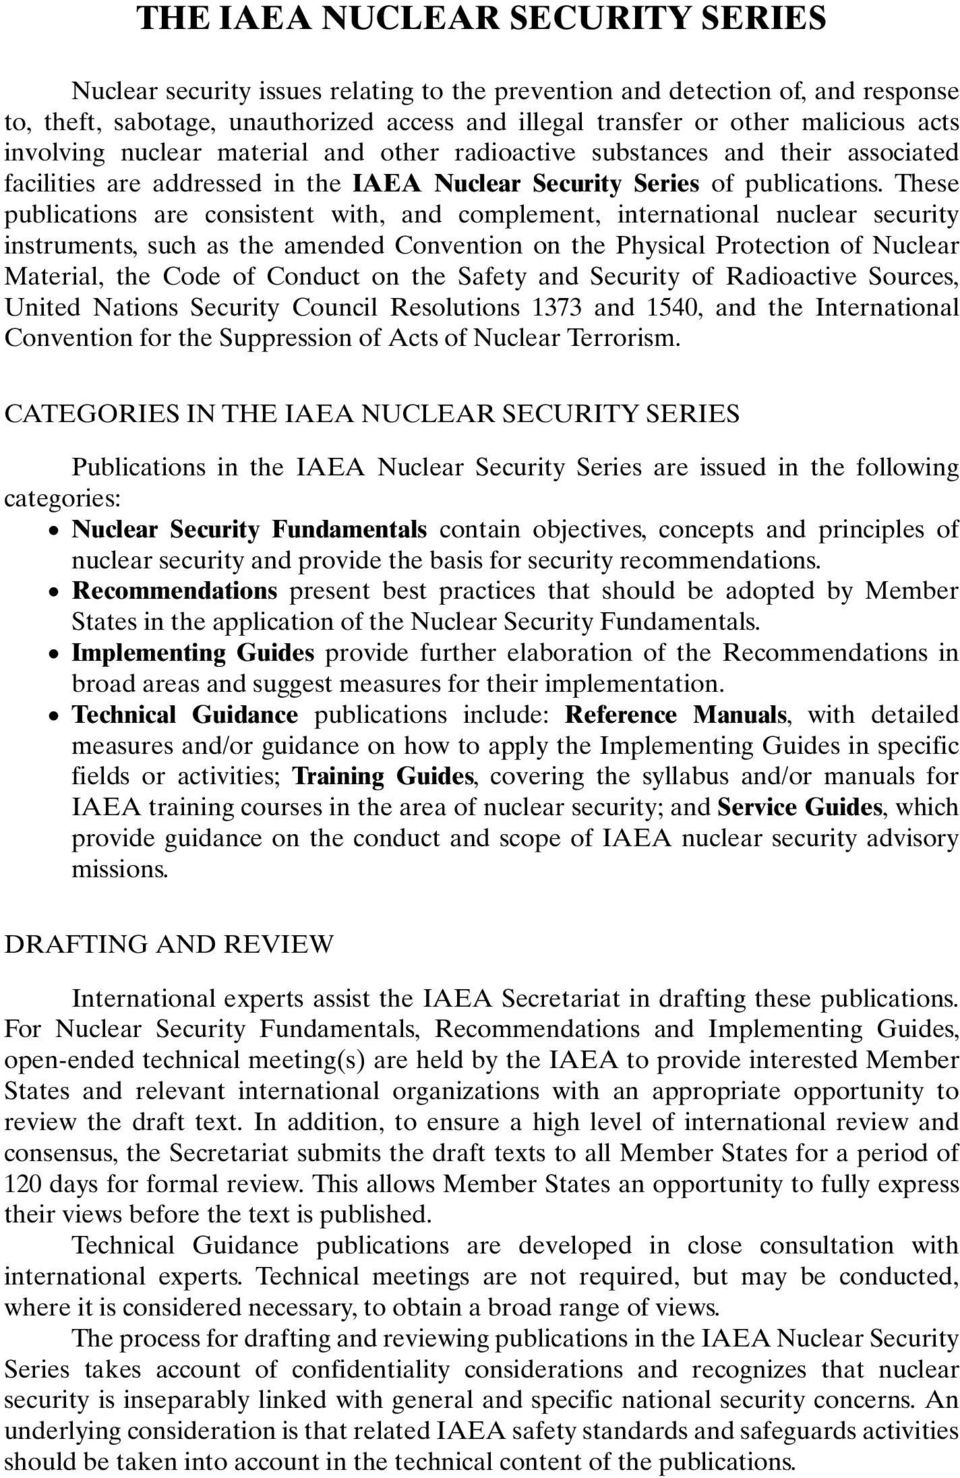 These publications are consistent with, and complement, international nuclear security instruments, such as the amended Convention on the Physical Protection of Nuclear Material, the Code of Conduct